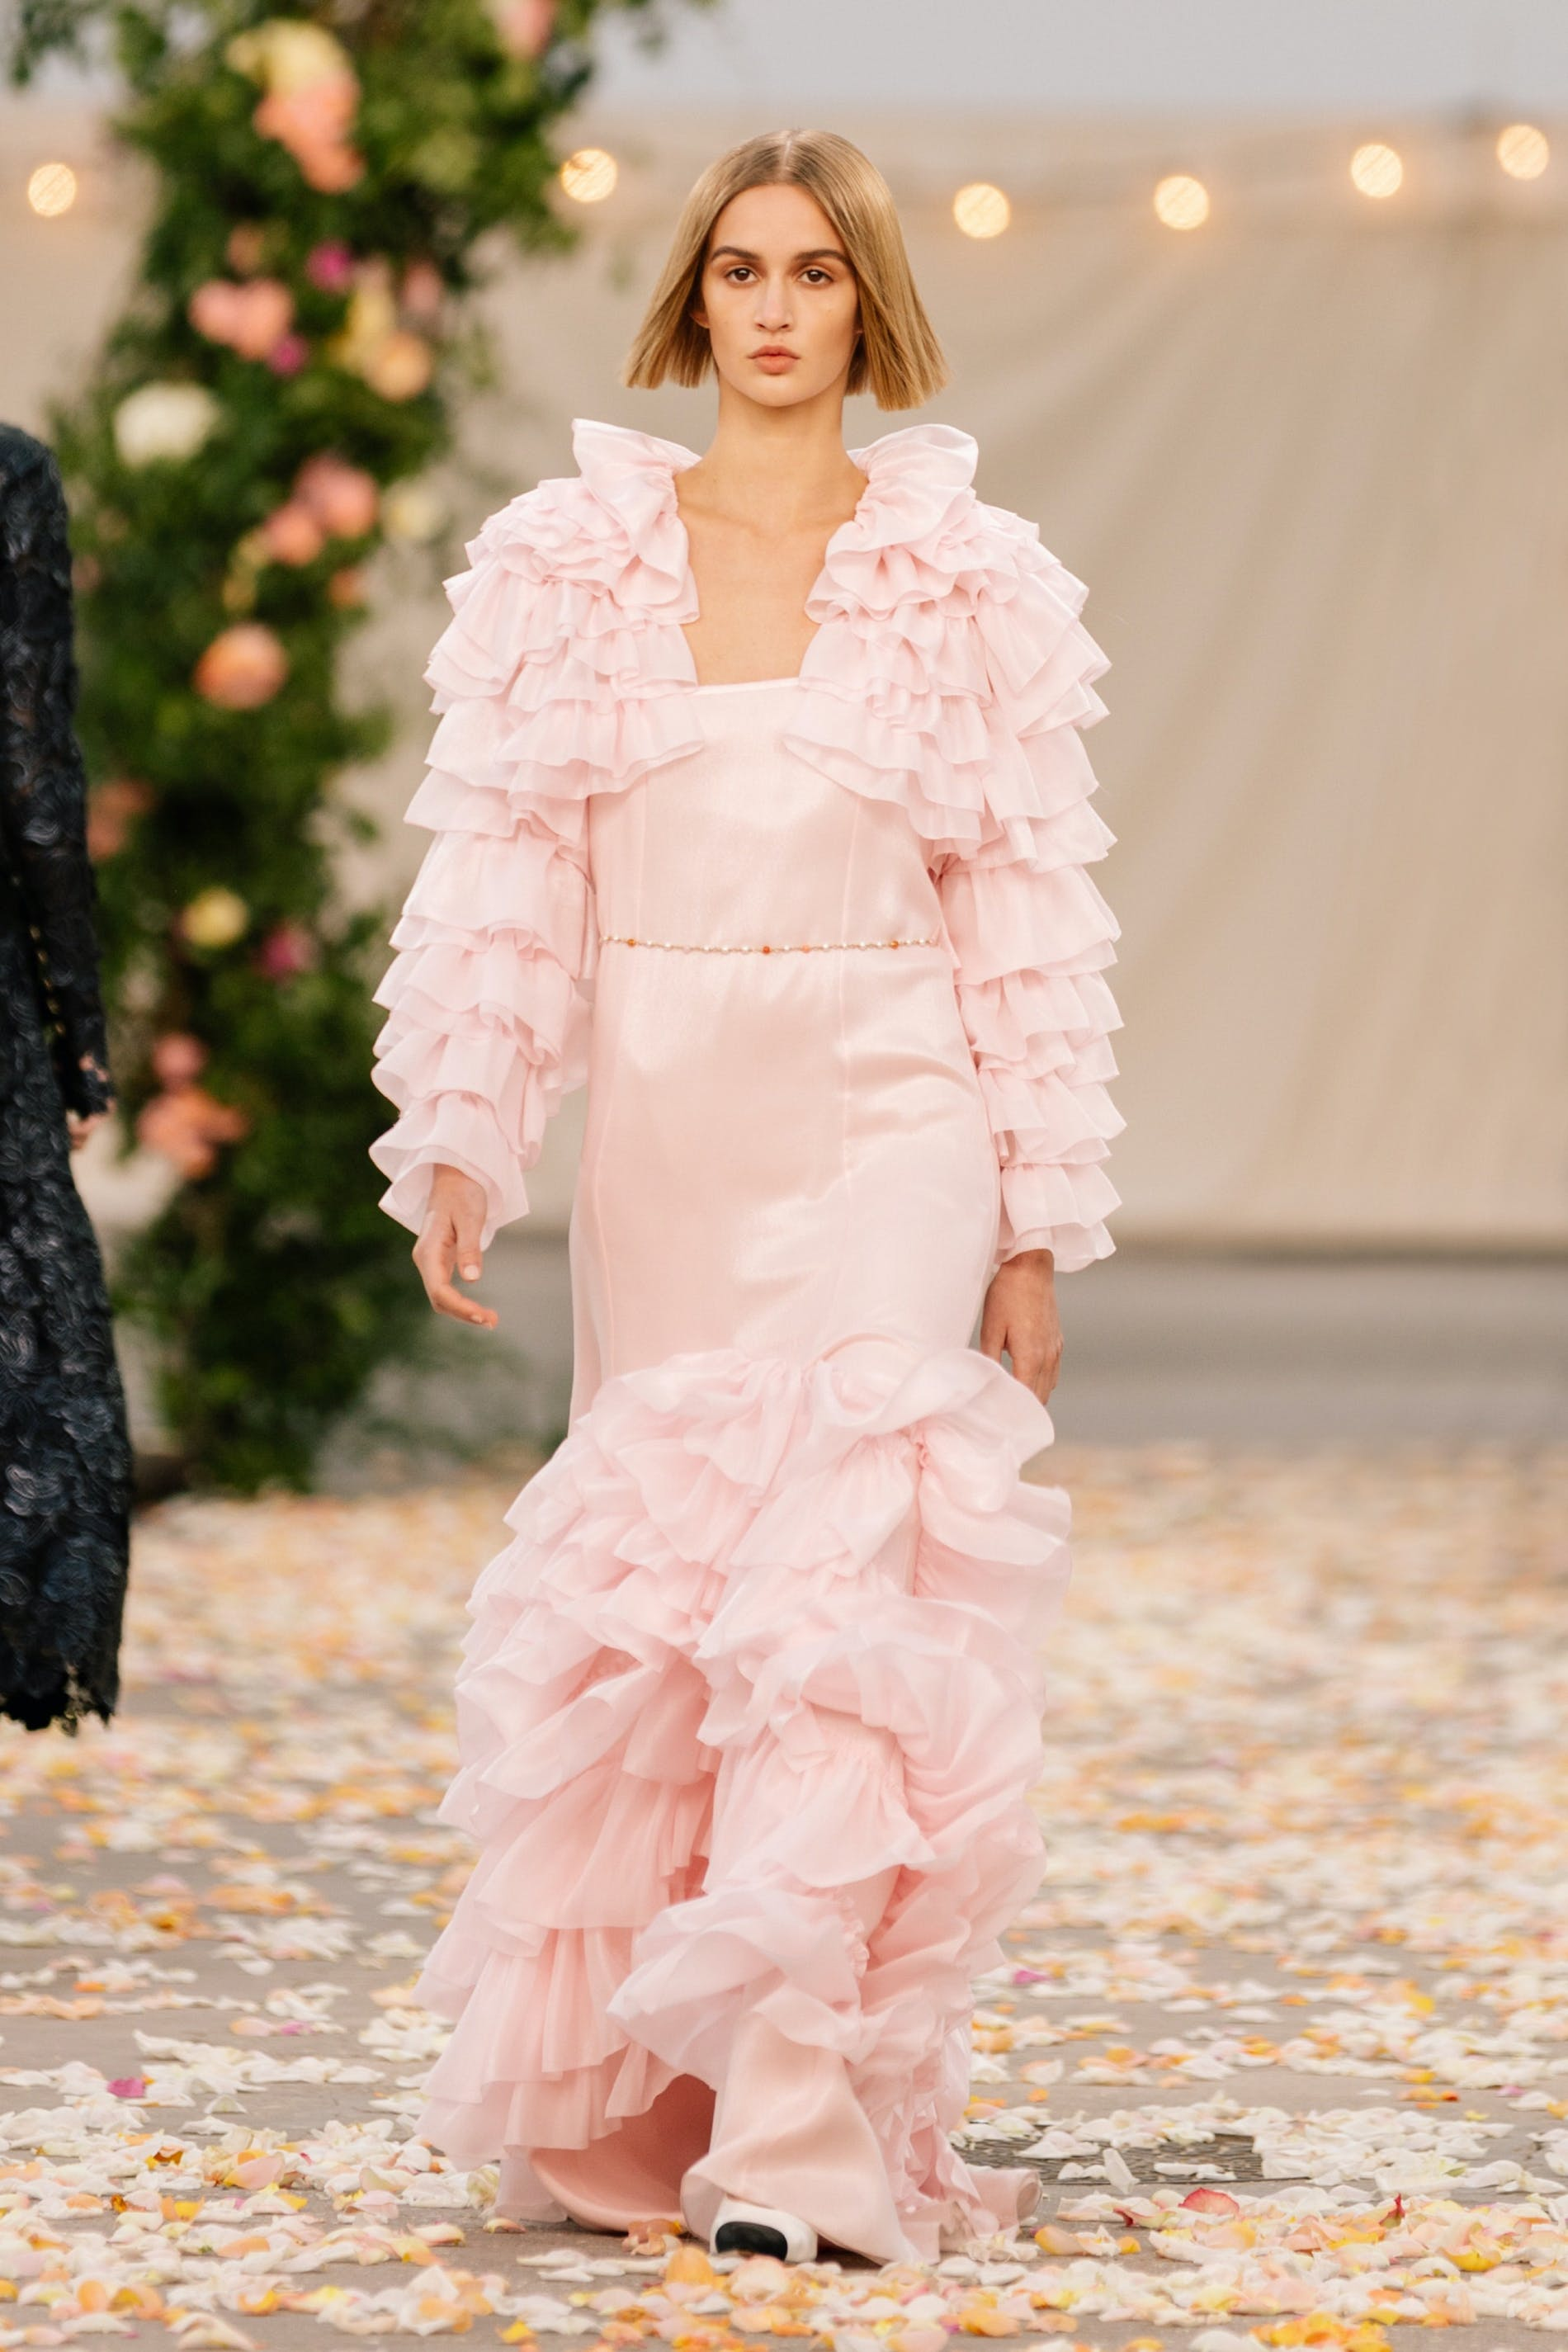 1611740617933220 chanel couture spring 2021 lofficiel monaco 8